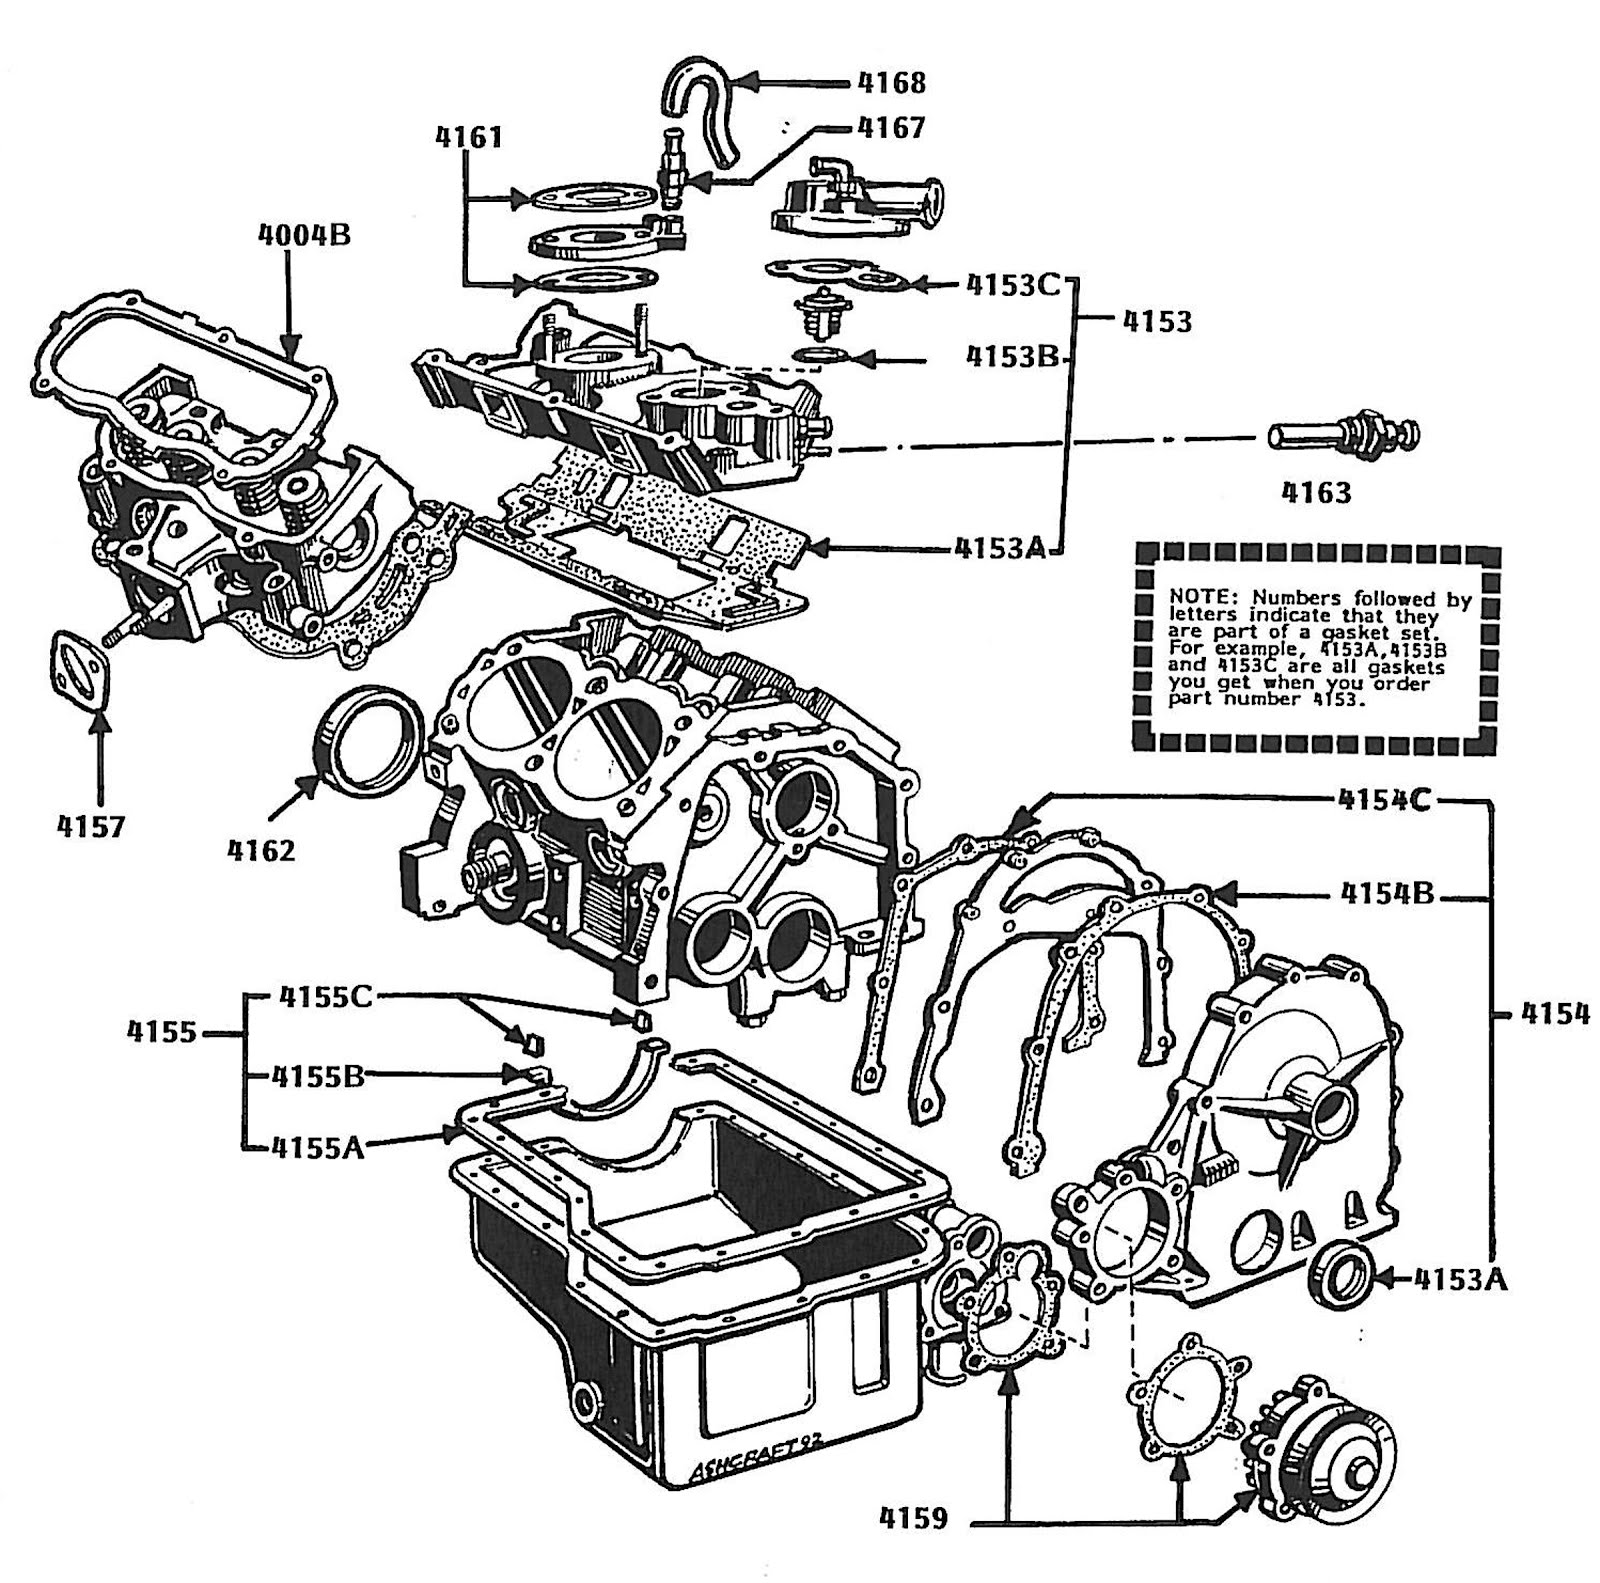 Saab Trionic 7 Wiring Diagram Auto Electrical Engine